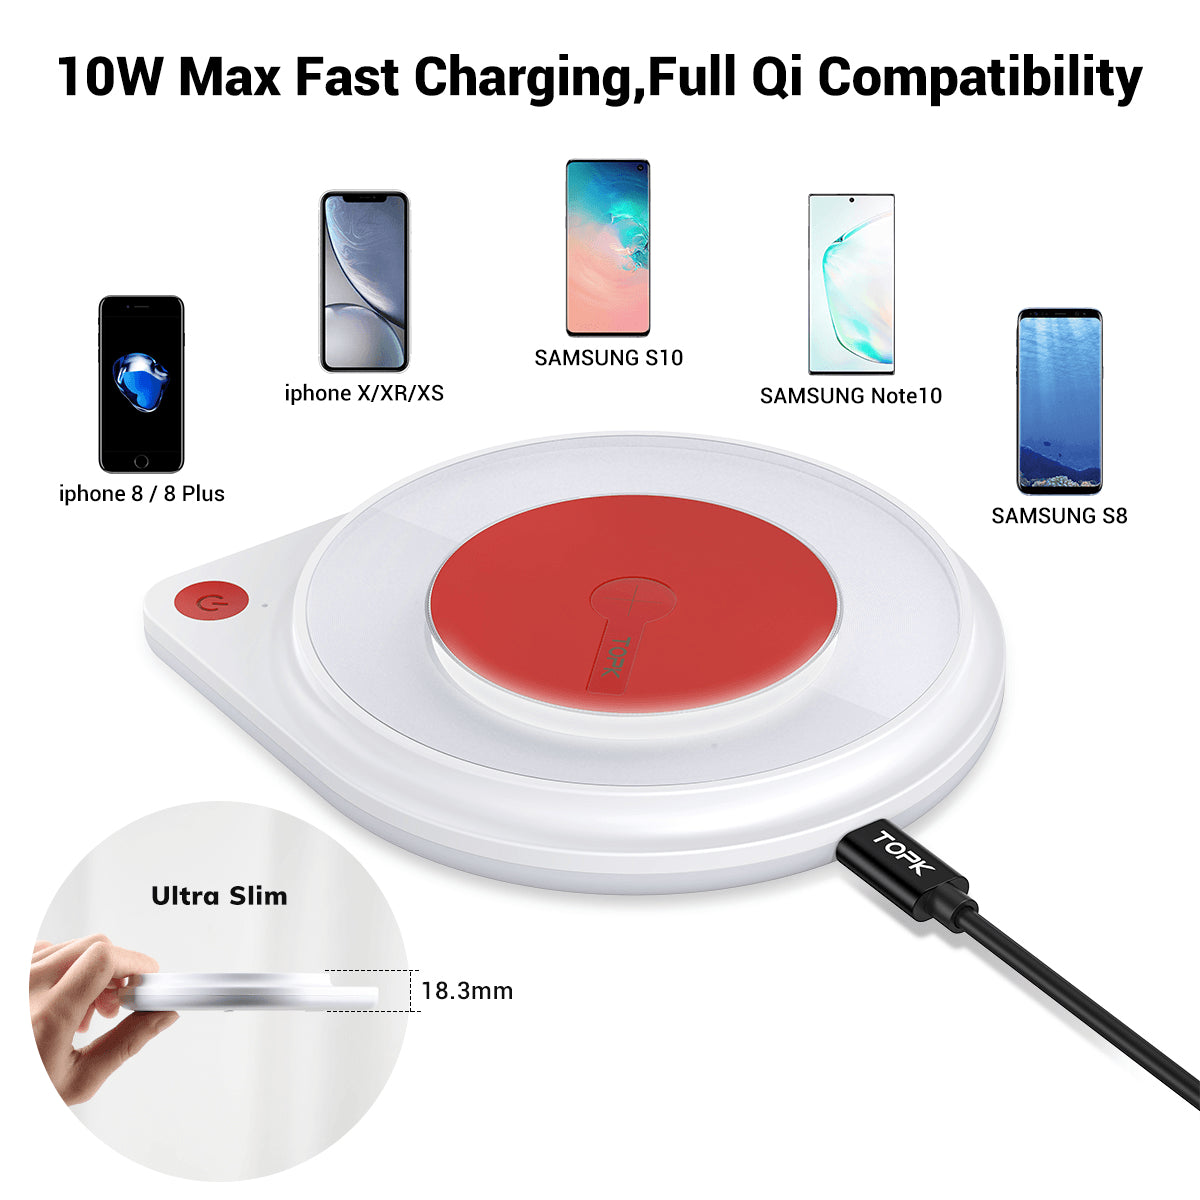 Fast Wireless Charger 10W for iPhone 11 XR X Max Pro 8 Plus Samsung S10 S9 S8 Pic6